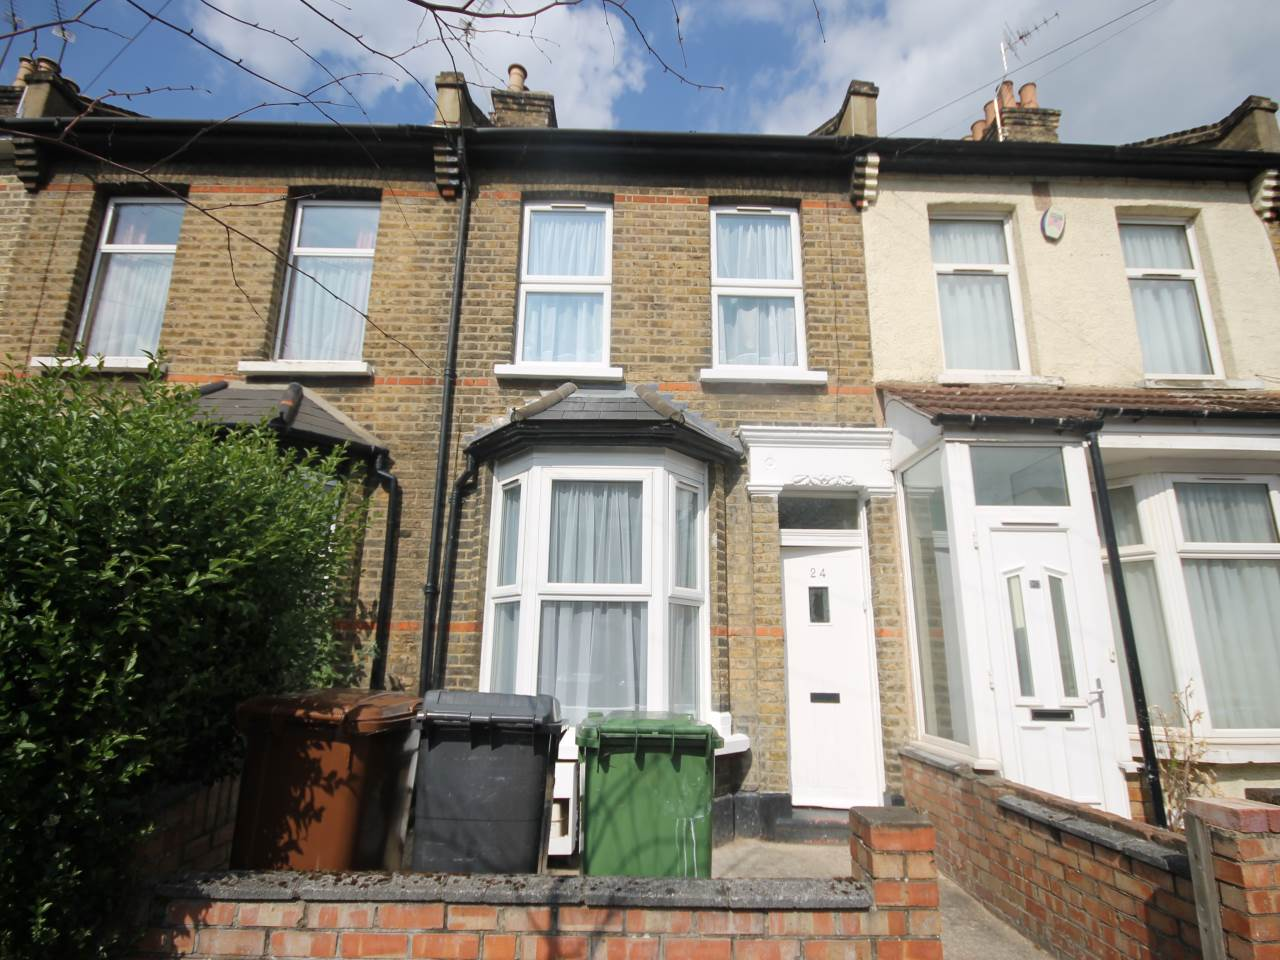 3 bed house to rent in Stratford, E15